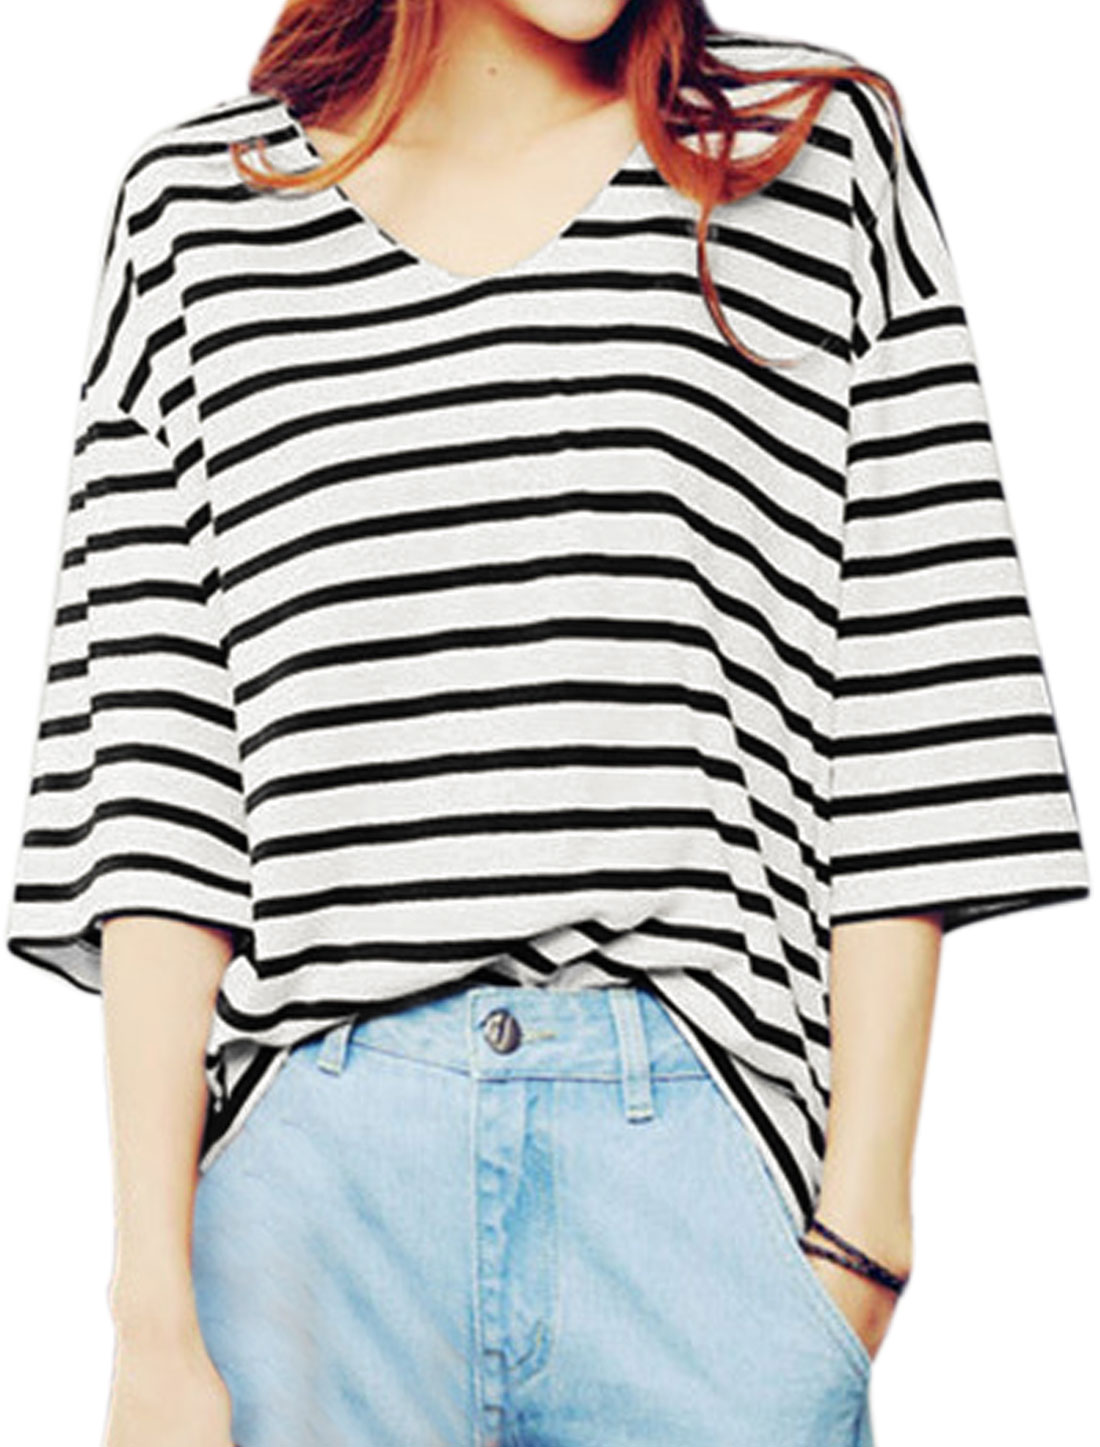 Women 3/4 Sleeves V Neck Loose Stripes Top Black XS